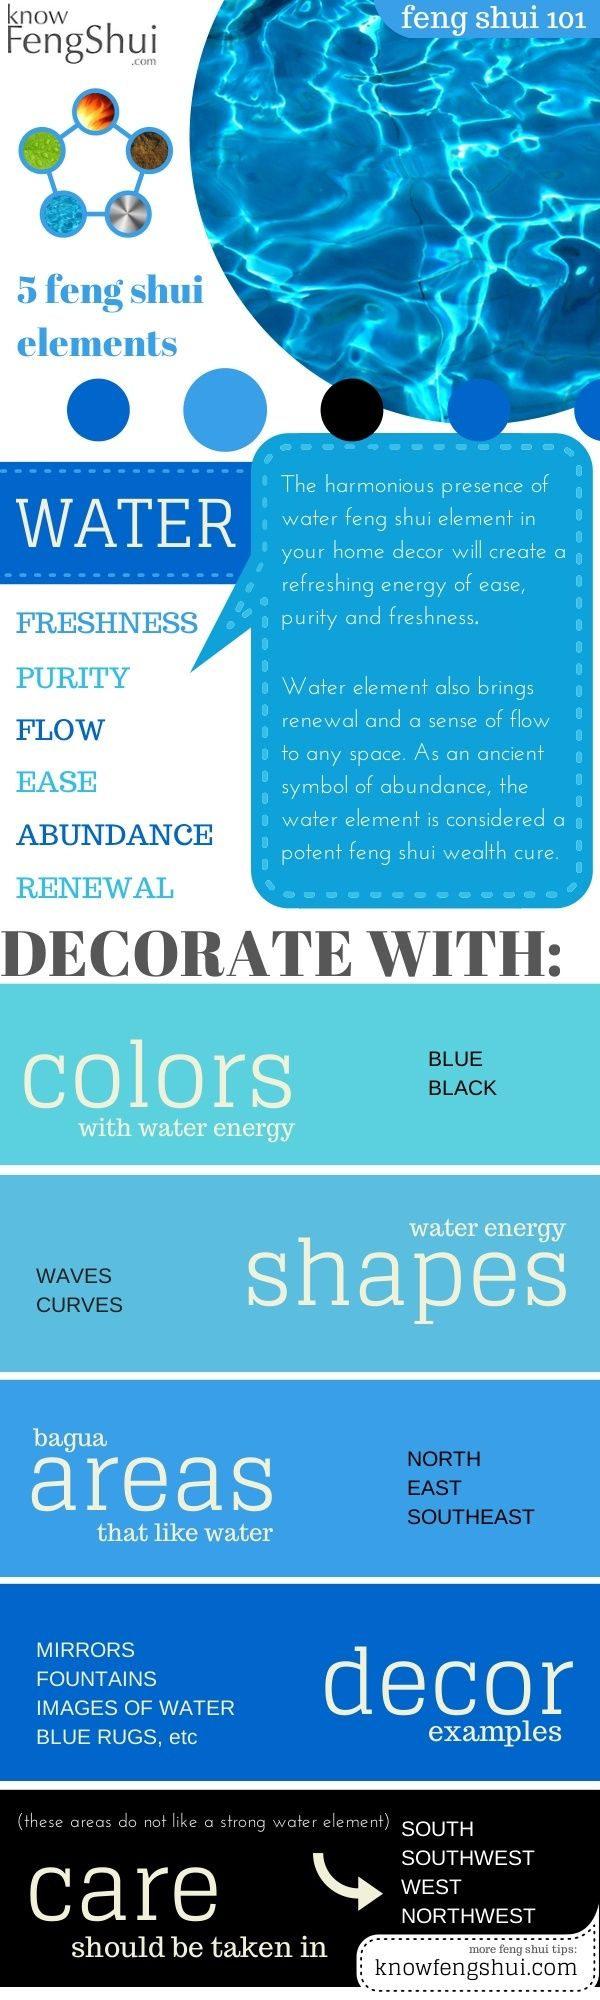 fengshui water sign feng shui pinterest signs feng. Black Bedroom Furniture Sets. Home Design Ideas